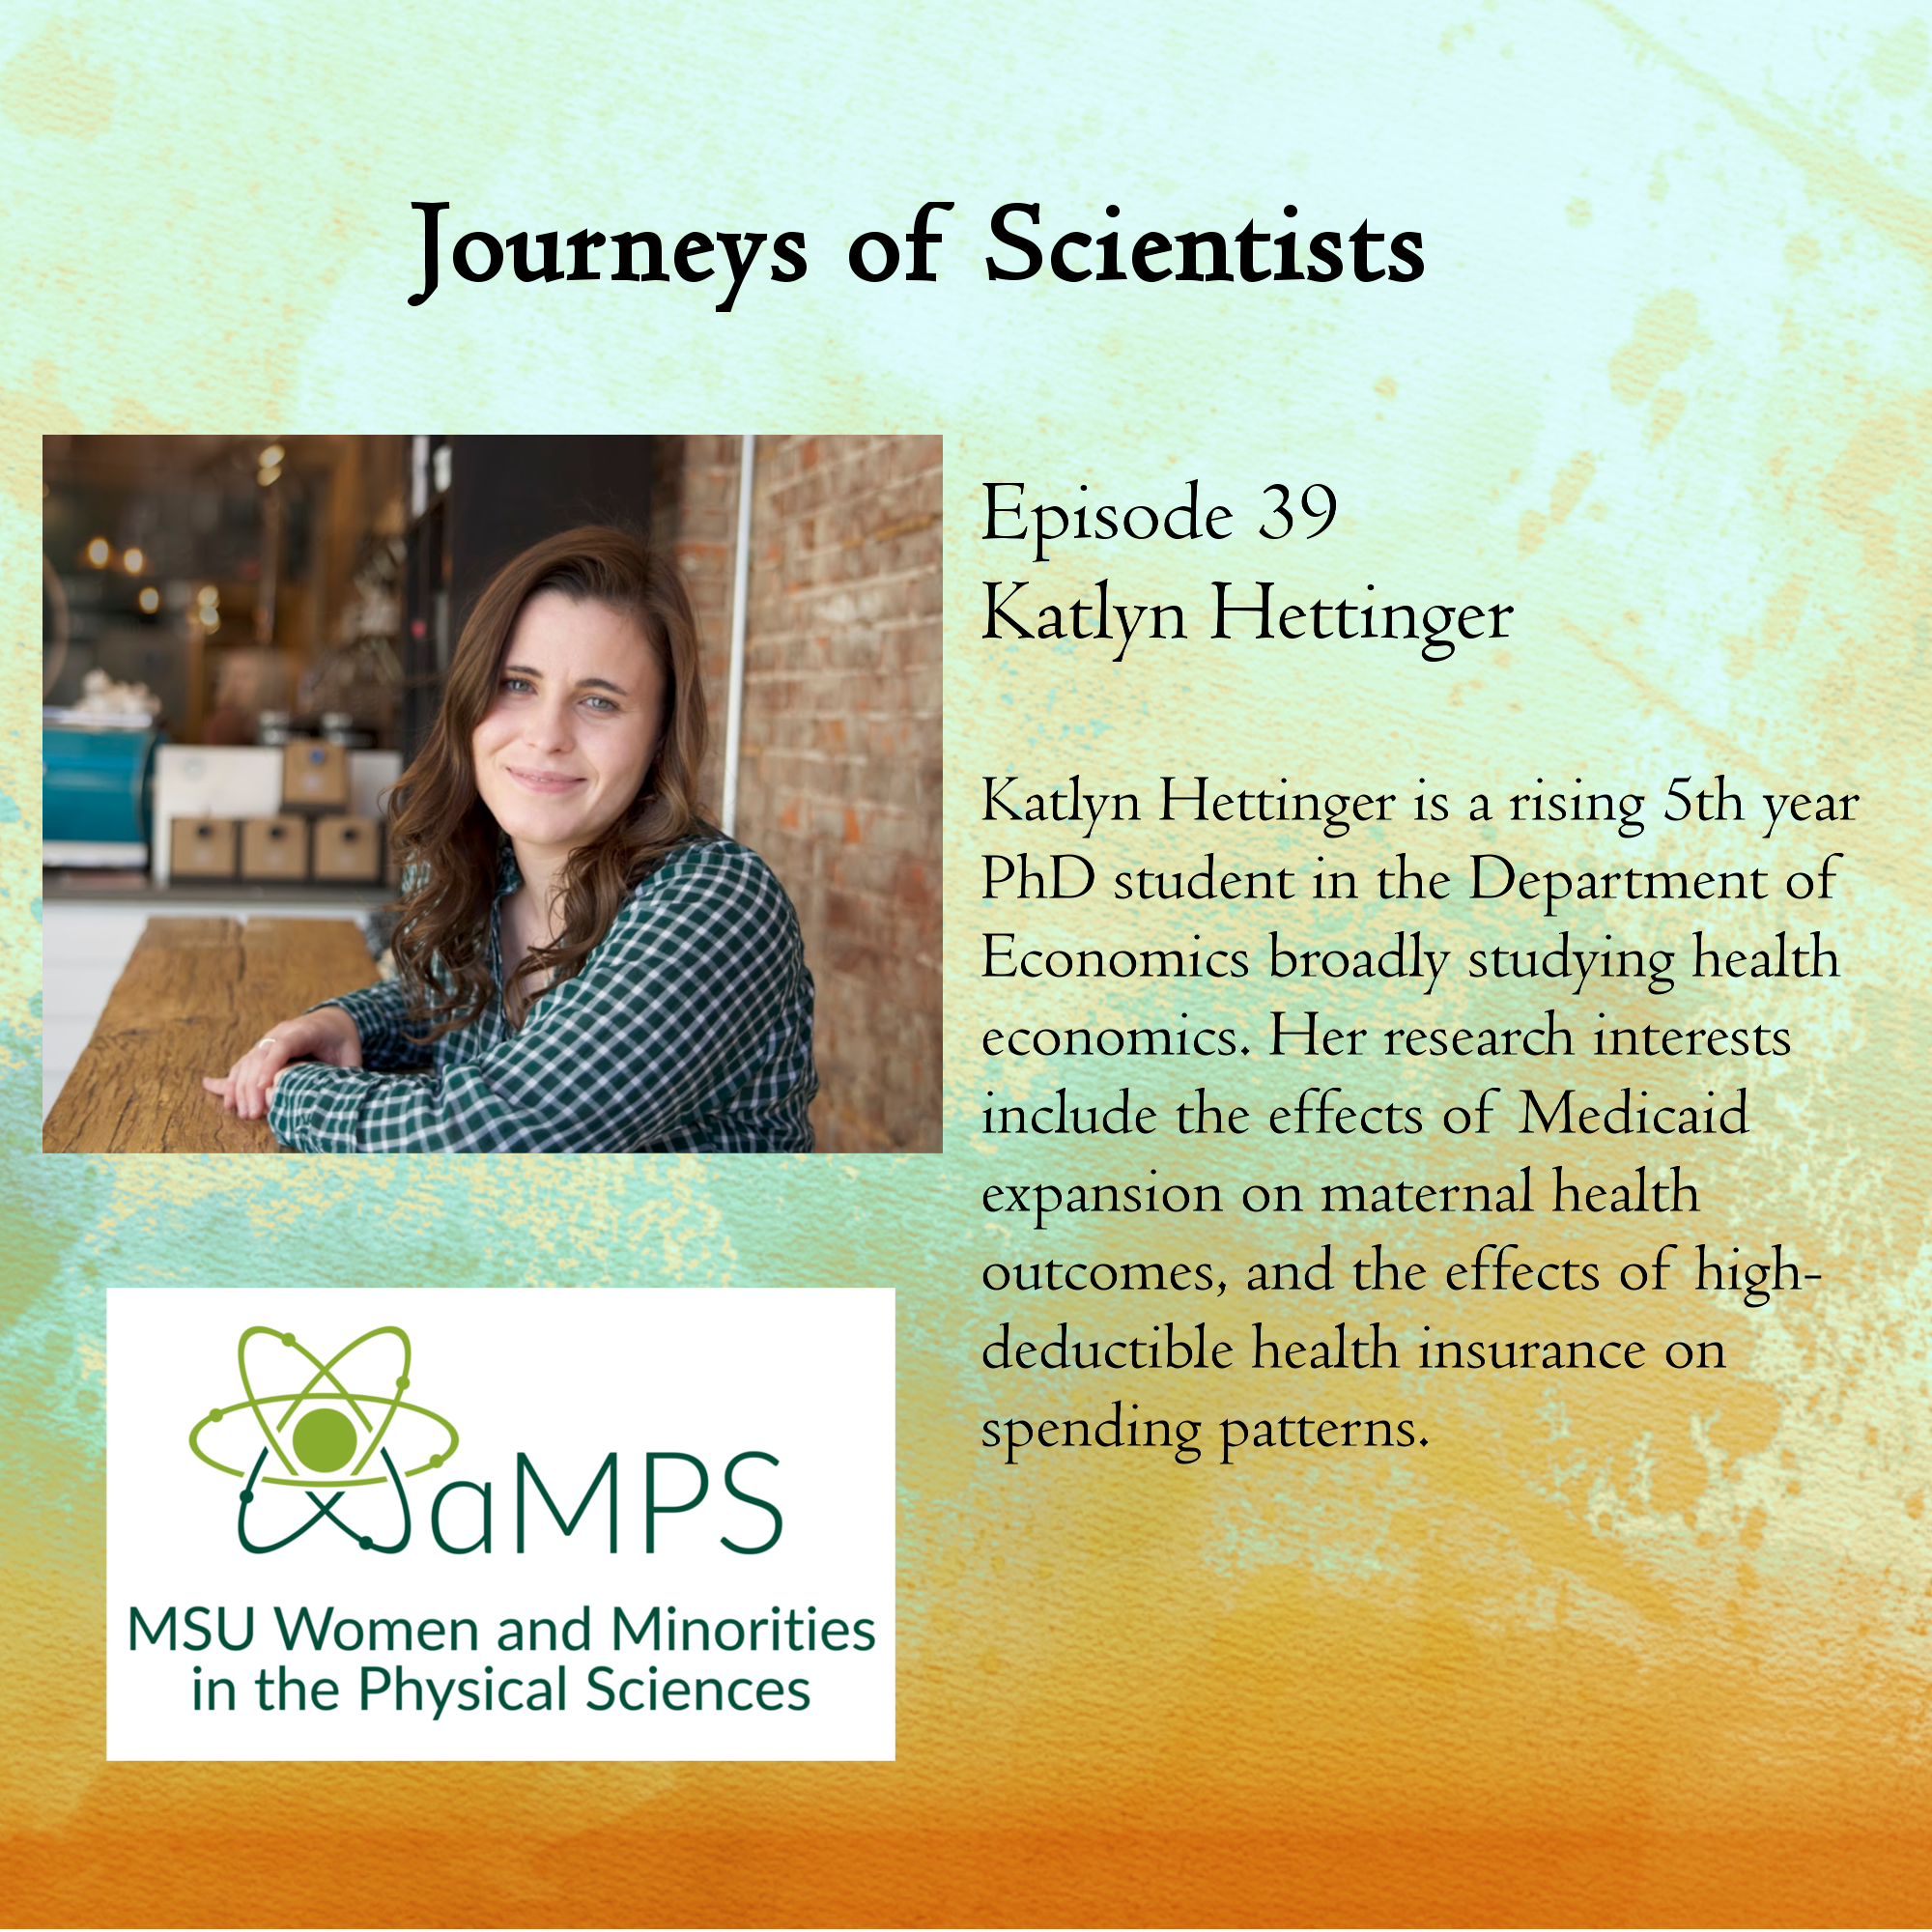 Katlyn Hettinger is a rising 5th year PhD student in the Department of Economics broadly studying health economics. Her research interests  include the effects of Medicaid expansion on maternal health outcomes, and the effects of high-deductible health insurance on spending patterns.